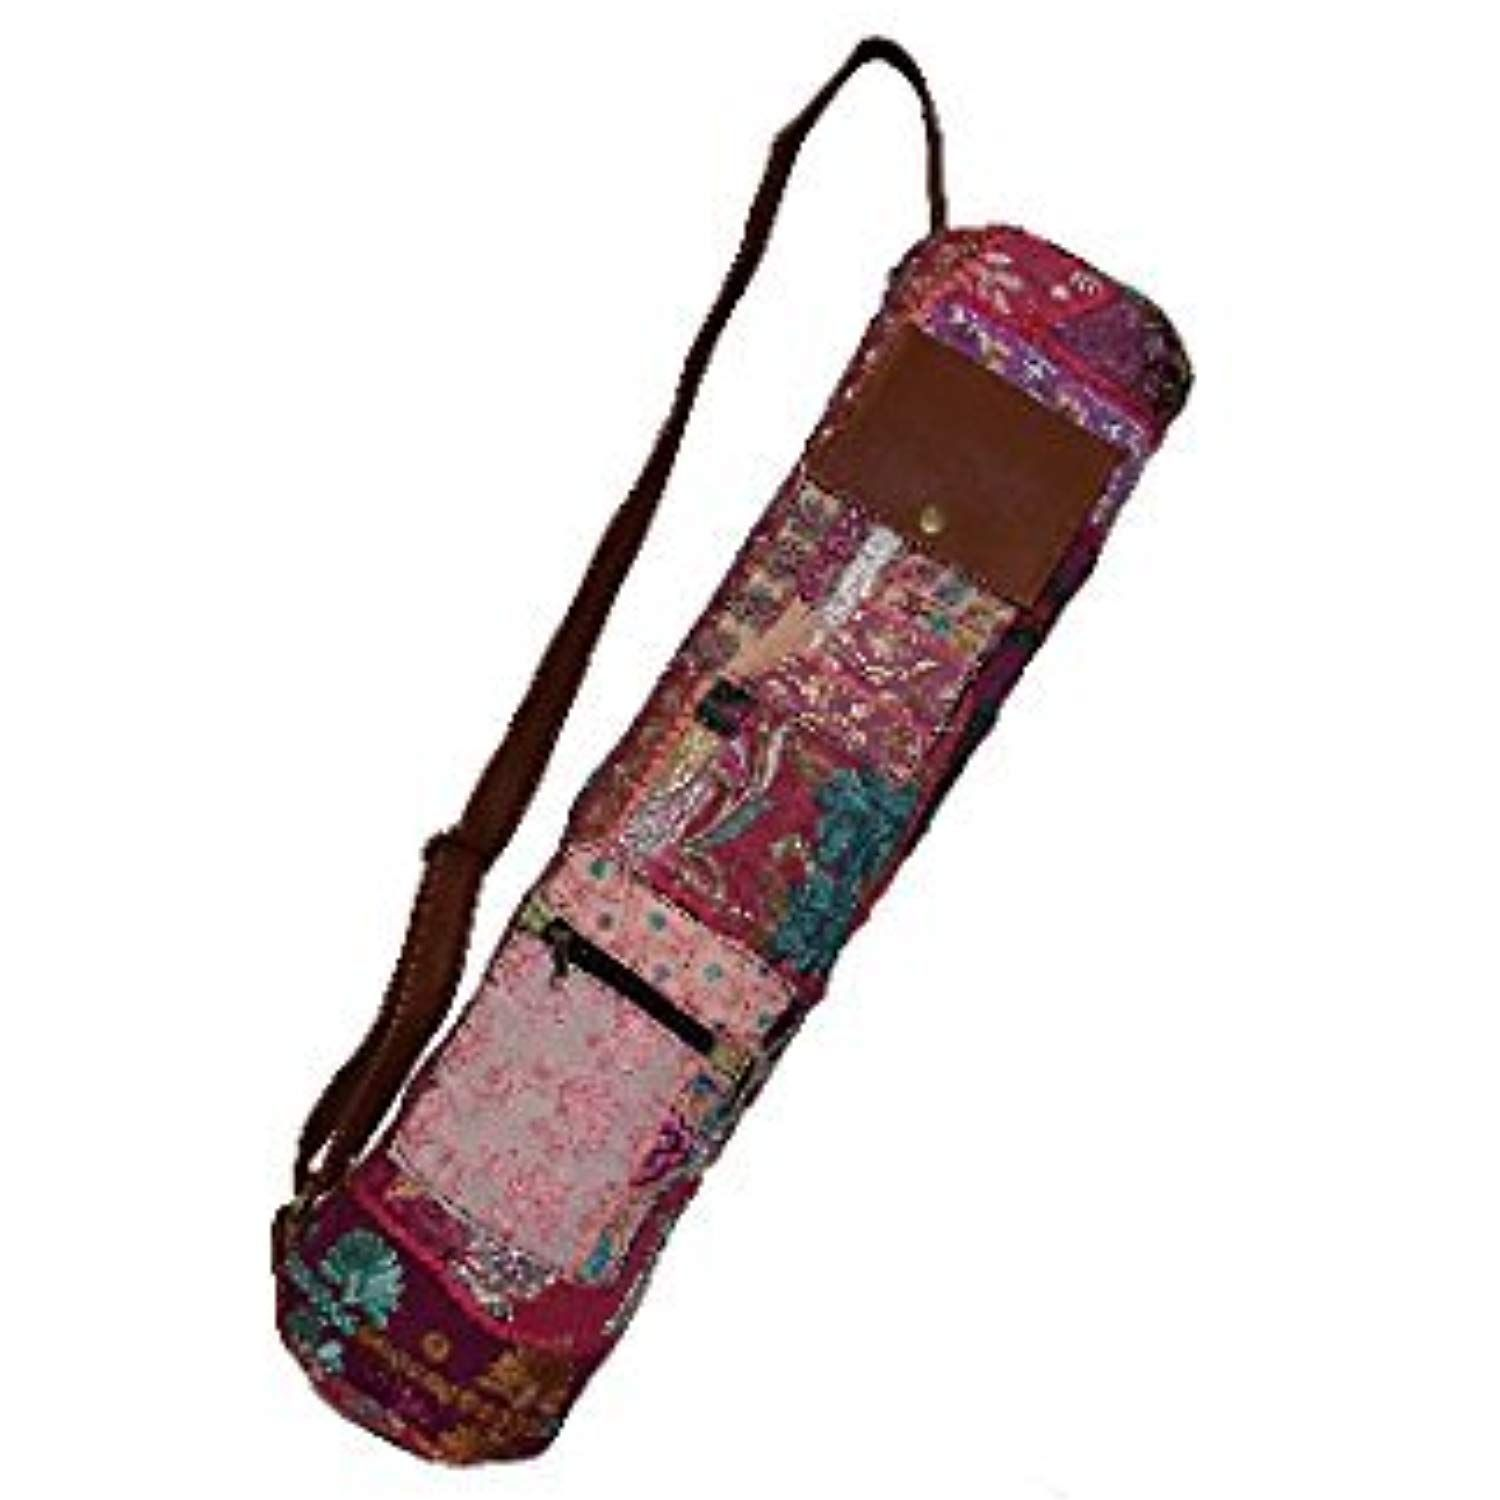 9ac7dcbb22d0 Cakra Ardor Yoga Mat Bag - PURPLE Vintage Custom Yoga Zipper Bag ...